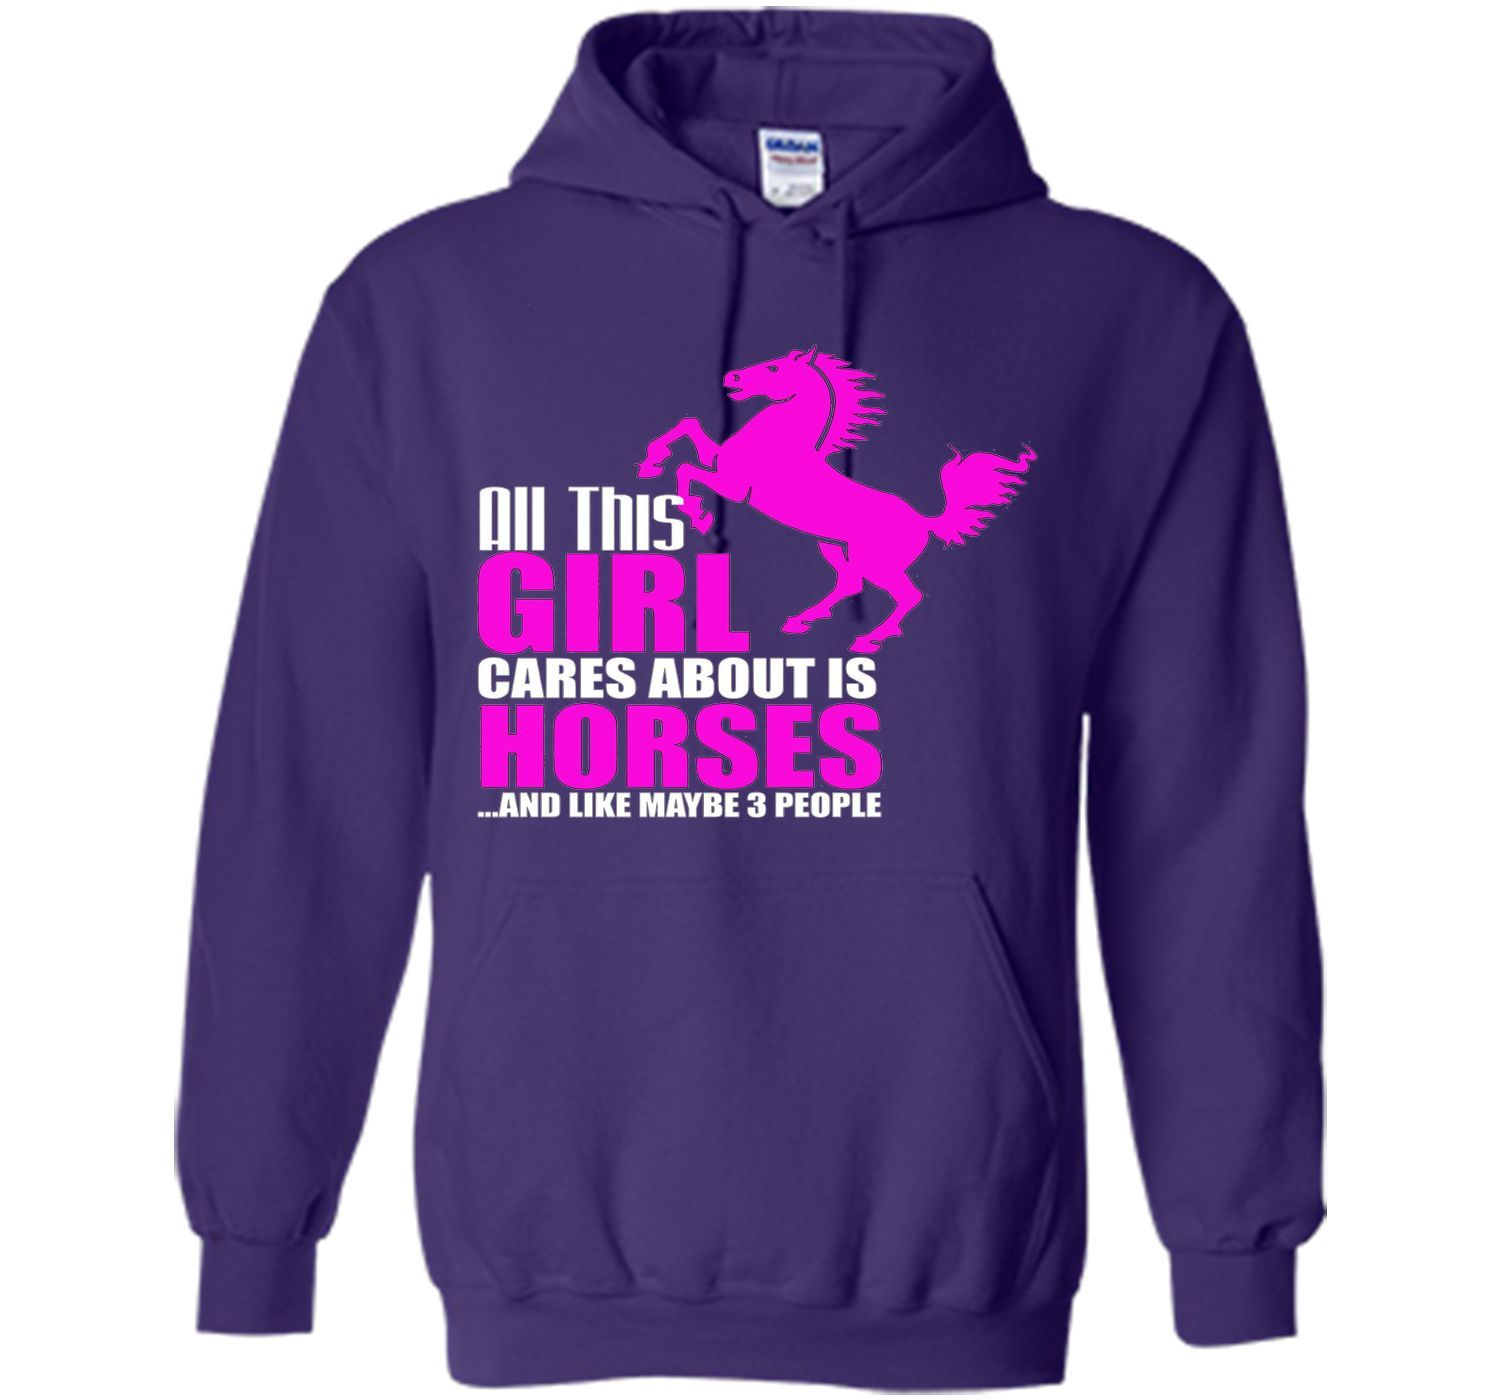 Horses Shirt - All This Girl Cares About Is Horses